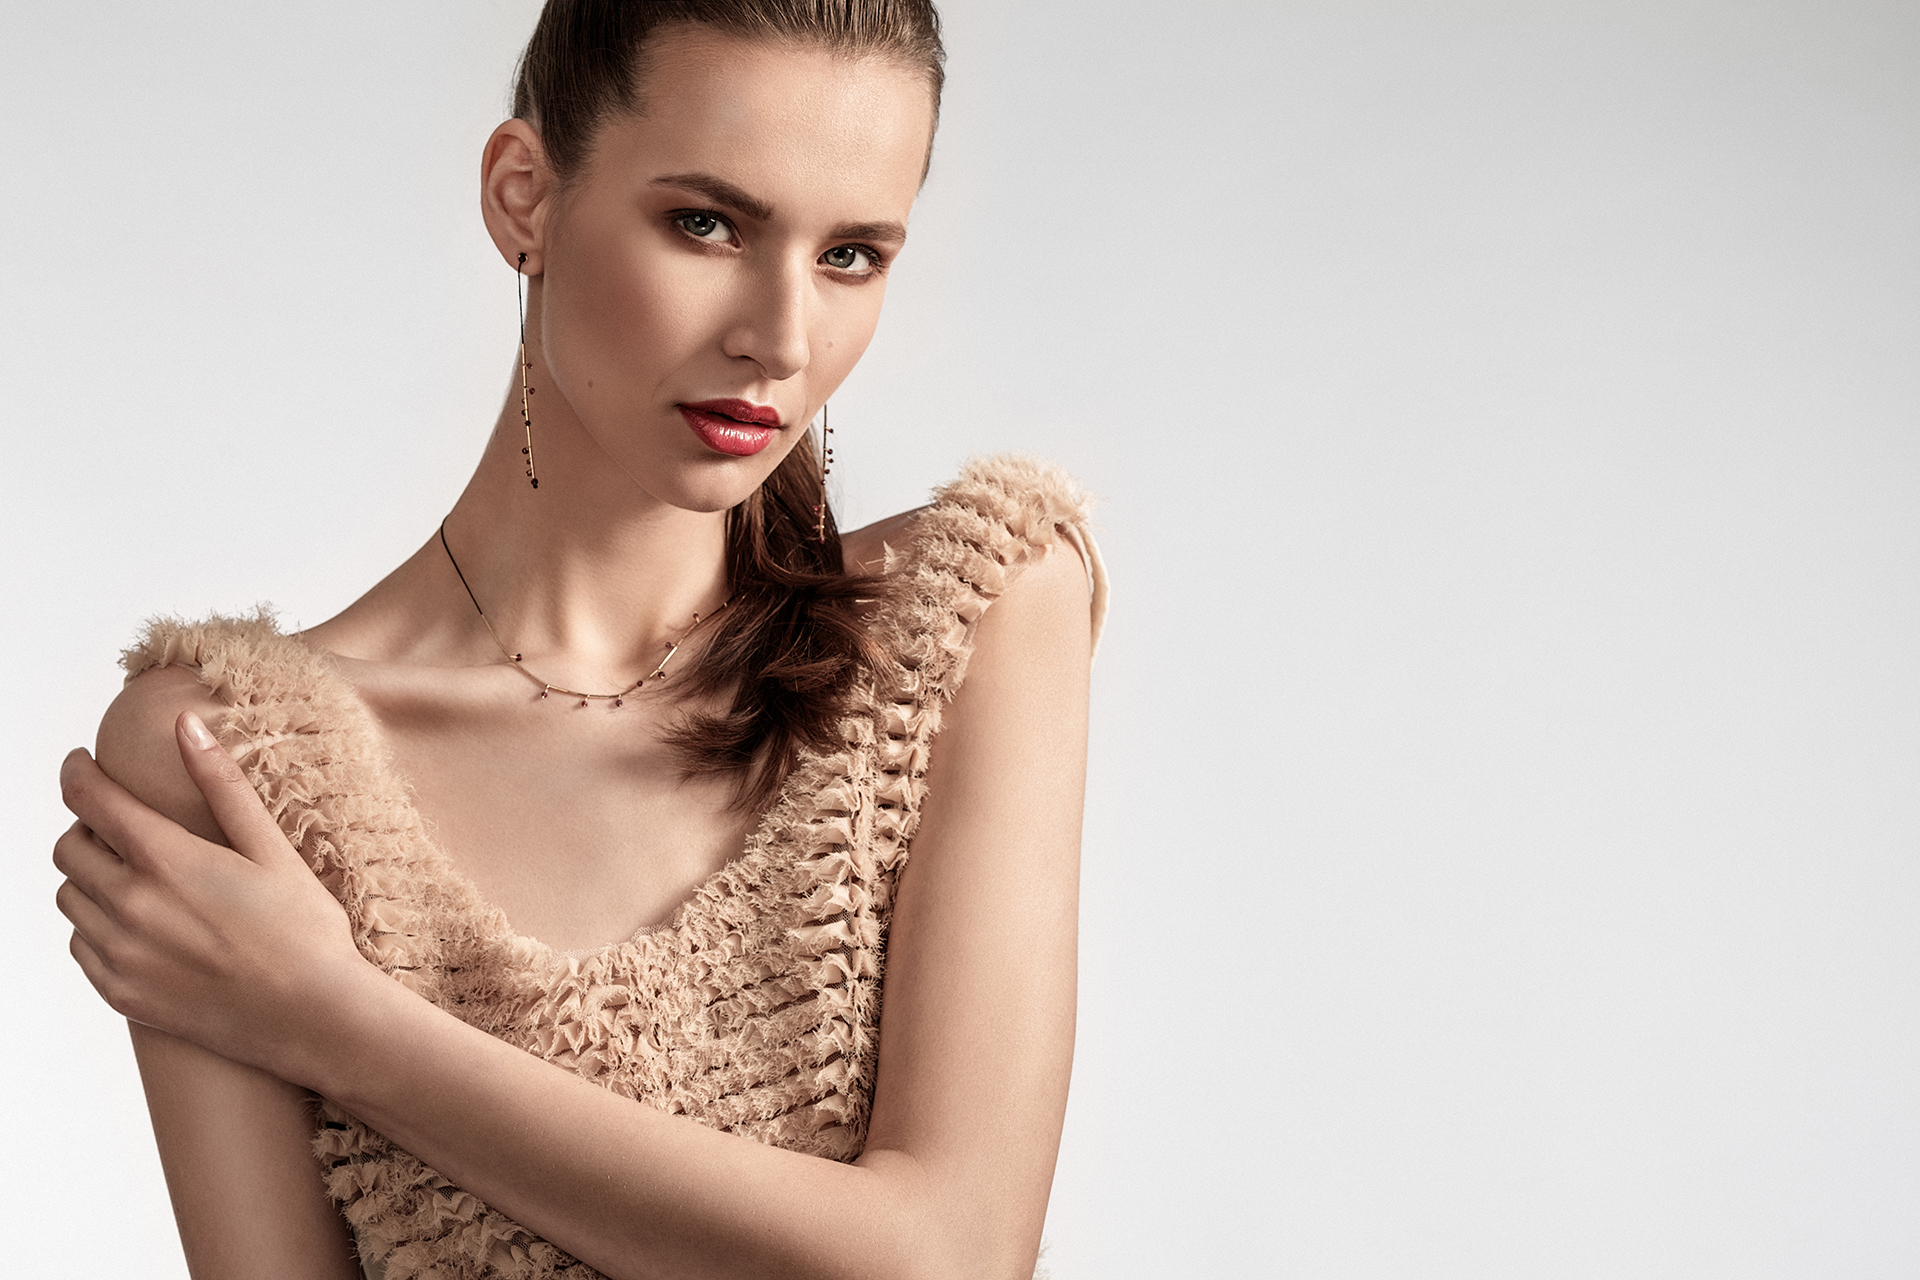 advertorial-work-for-a-fashion-designer-in-bucharest-key-visuals-for-a-marketing-campaign-8